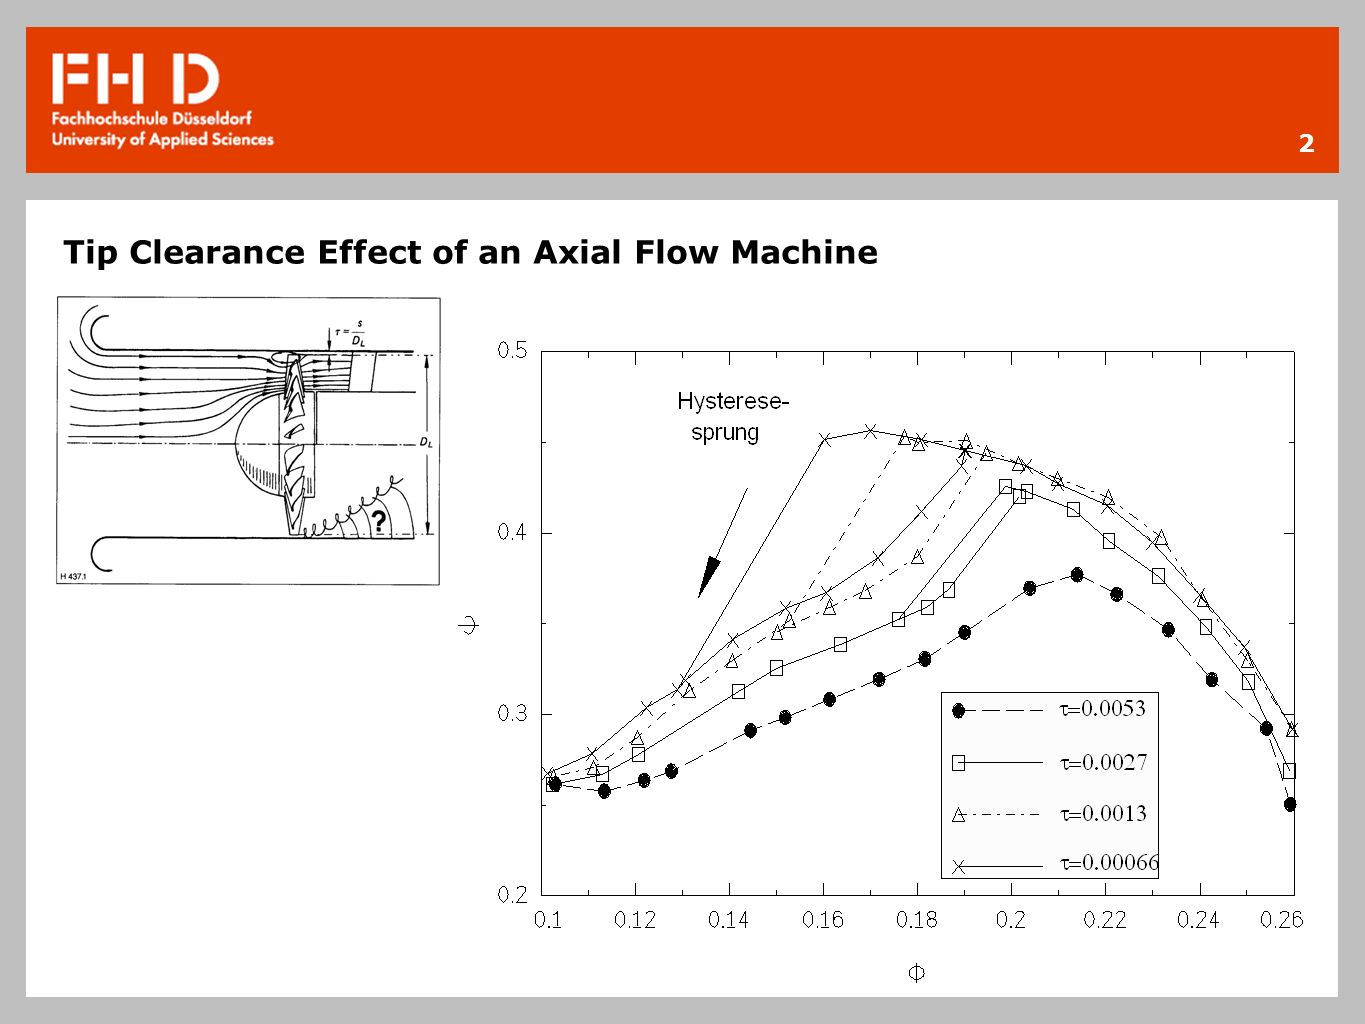 Tip Clearance Effect of an Axial Flow Machine